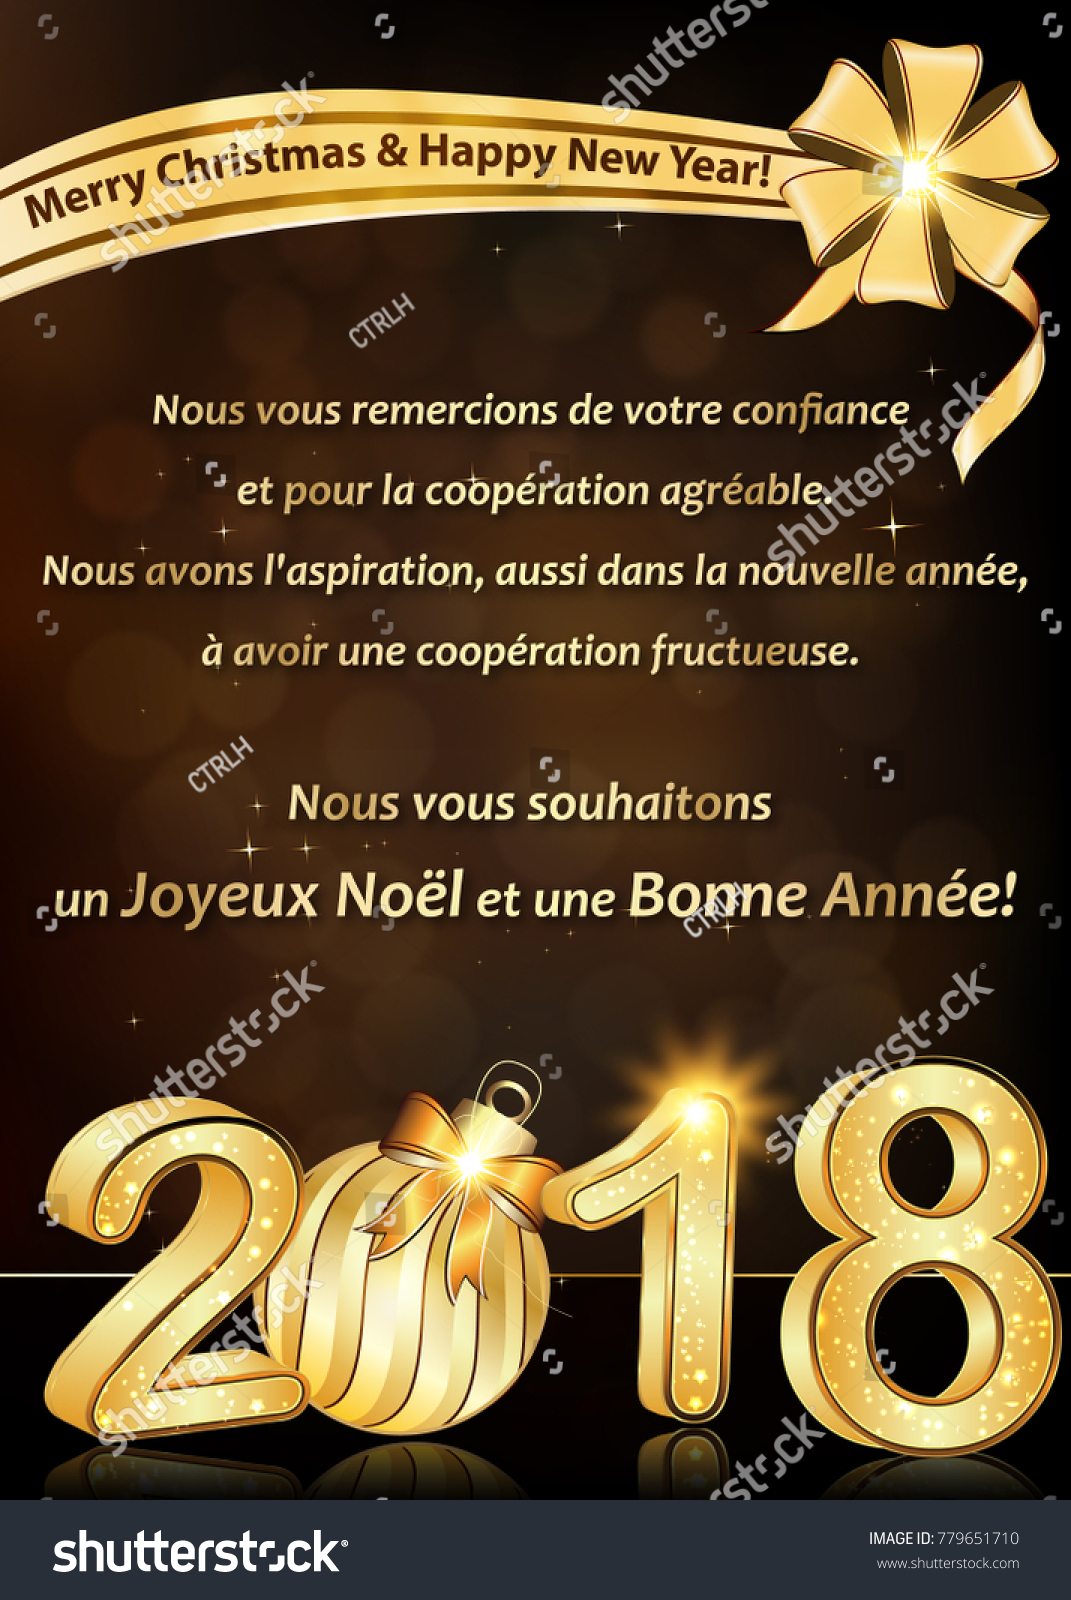 Thank you business happy new year stock illustration 779651710 thank you business happy new year 2018 greeting card written in french corporate greeting card kristyandbryce Image collections